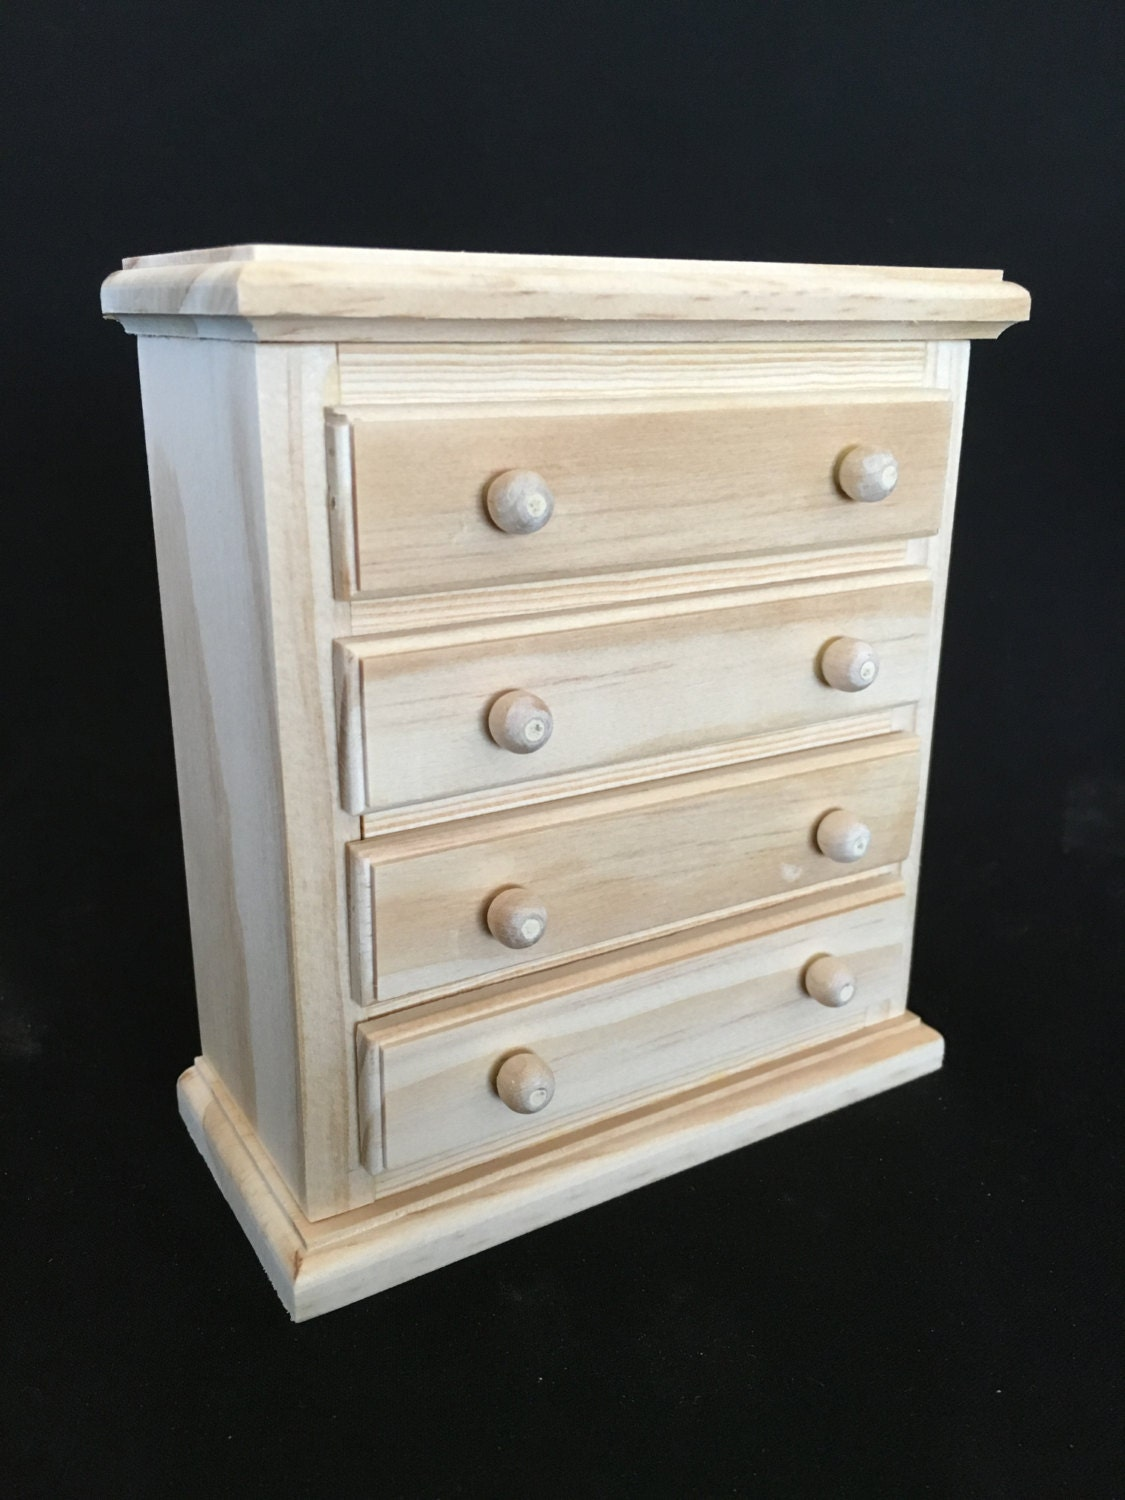 4 Drawer Chest For American Girl Mini Doll And Other 6 5